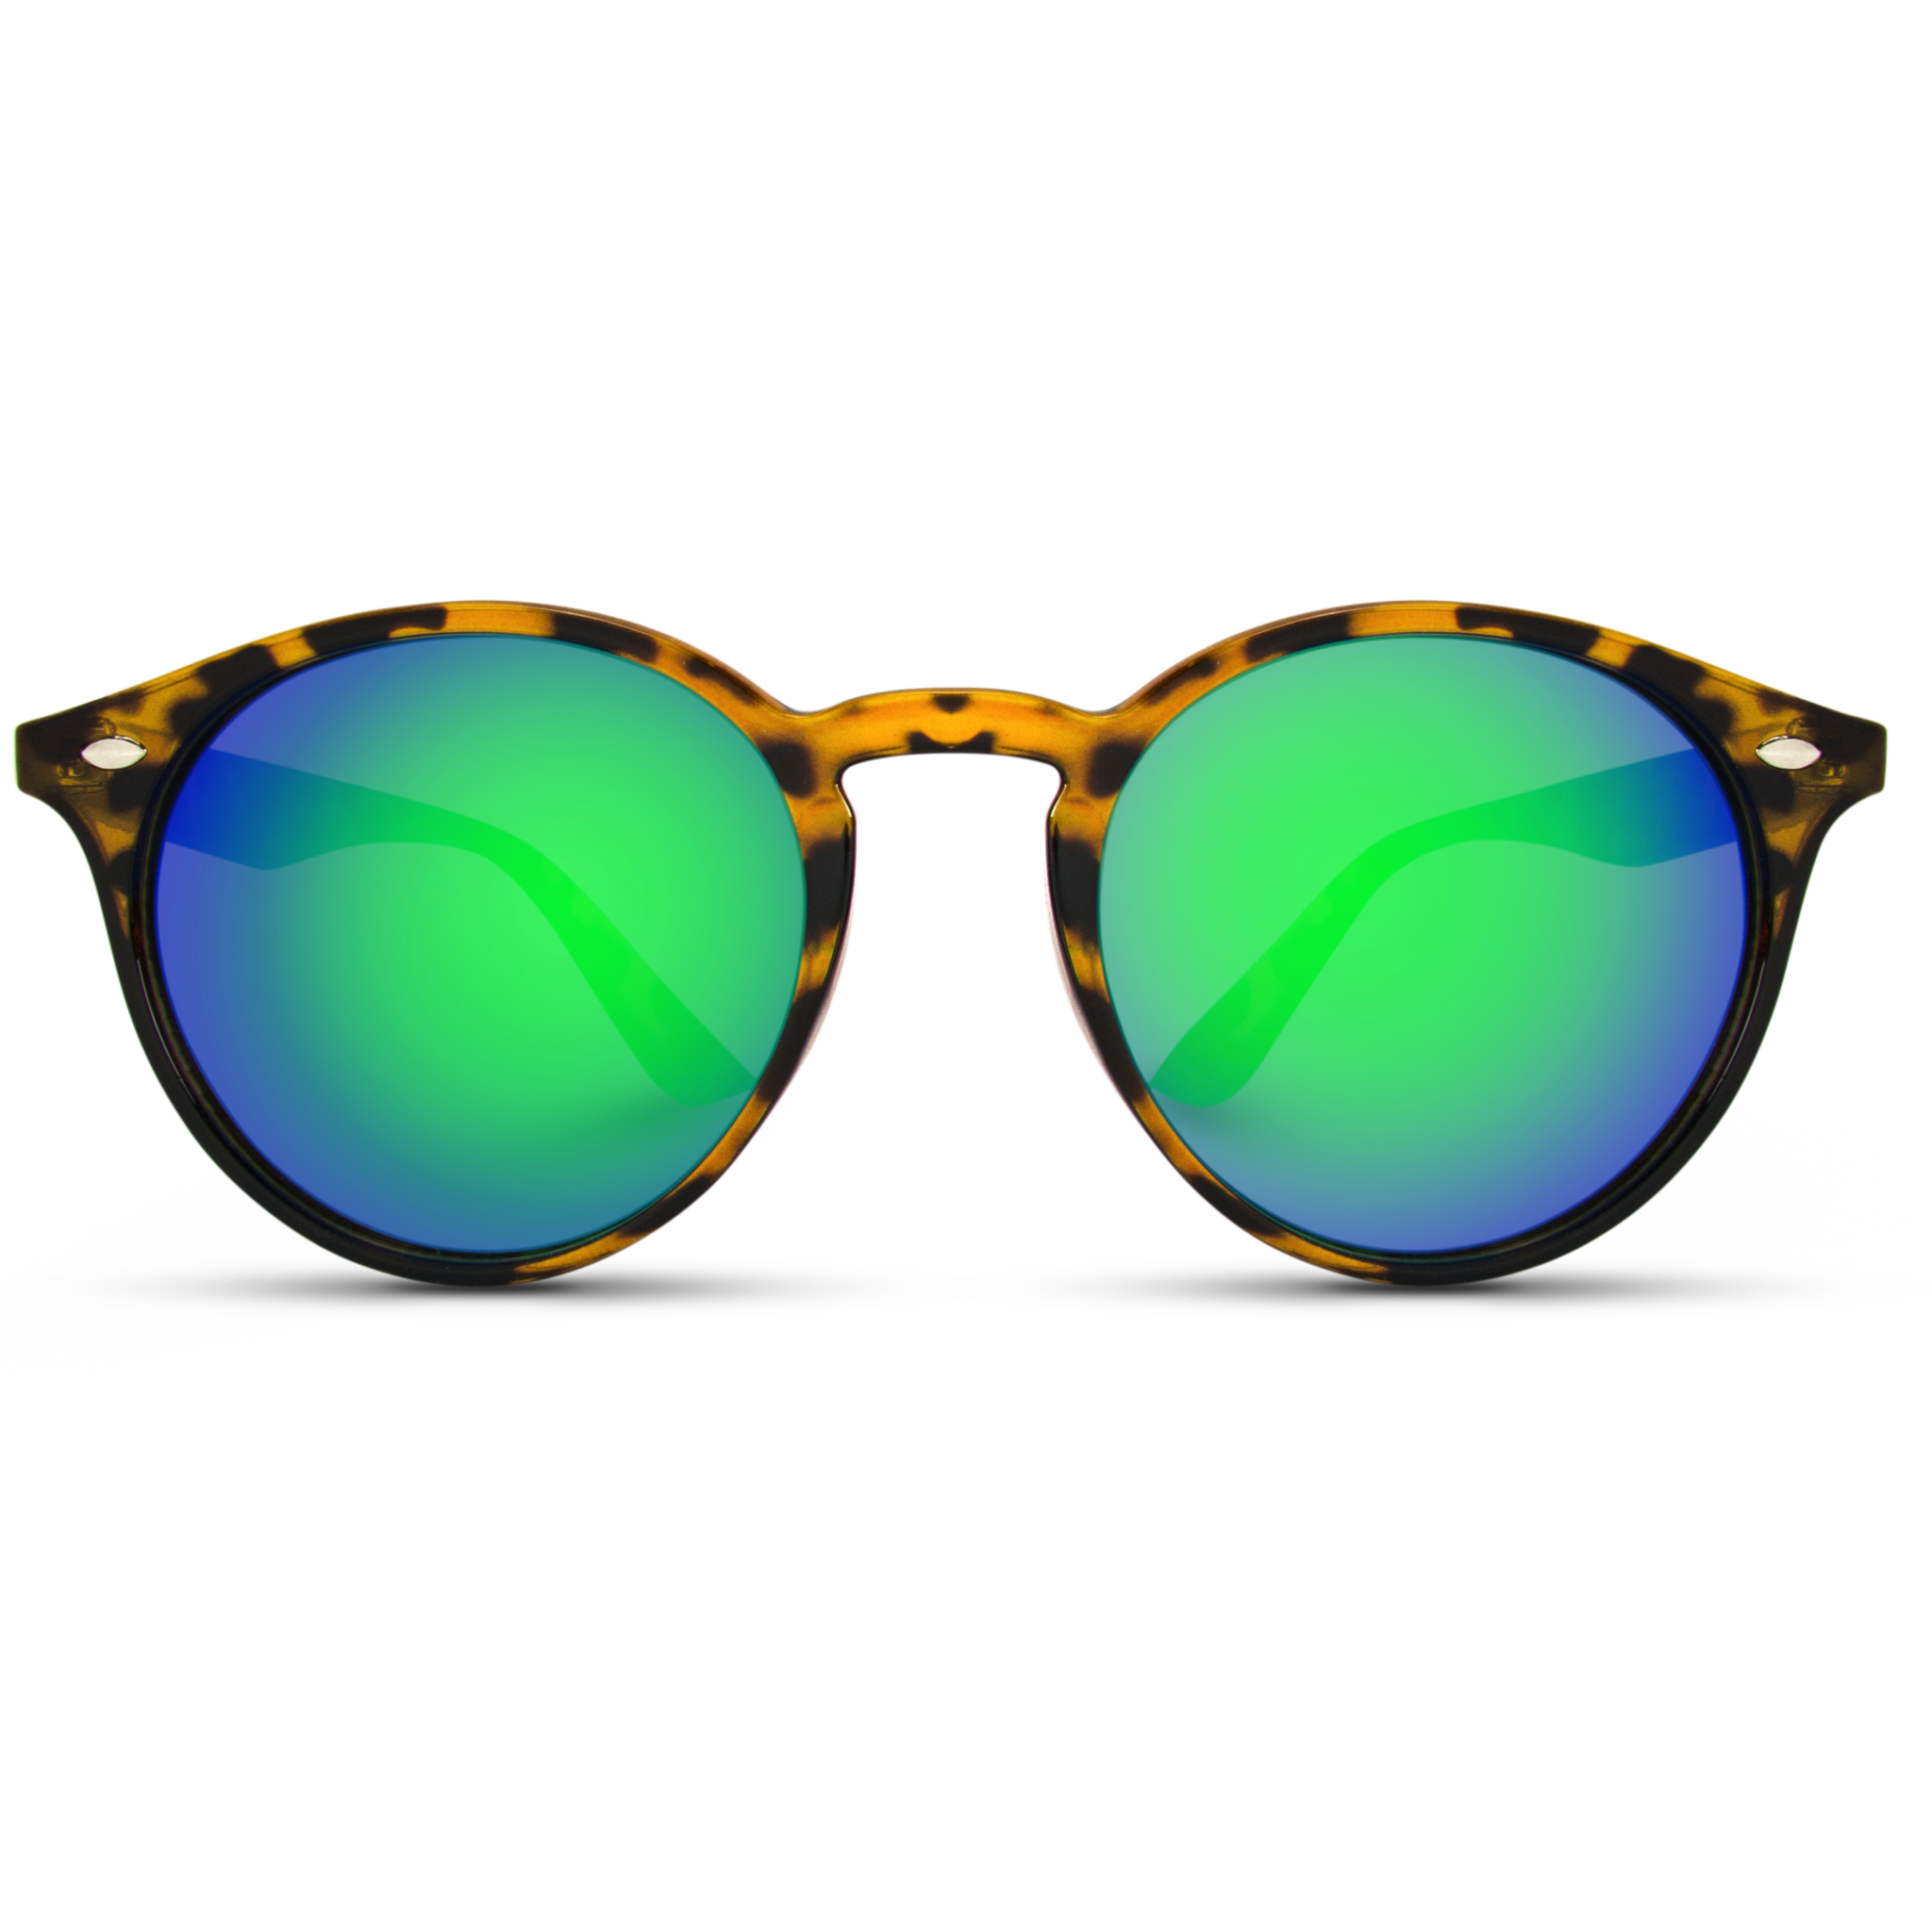 Green Mirrored Reflective Lenses New Vintage Retro Glasses Classic Round Sunglasses Perfect Fo Sunglass Frames Blue Background Images Black Background Images